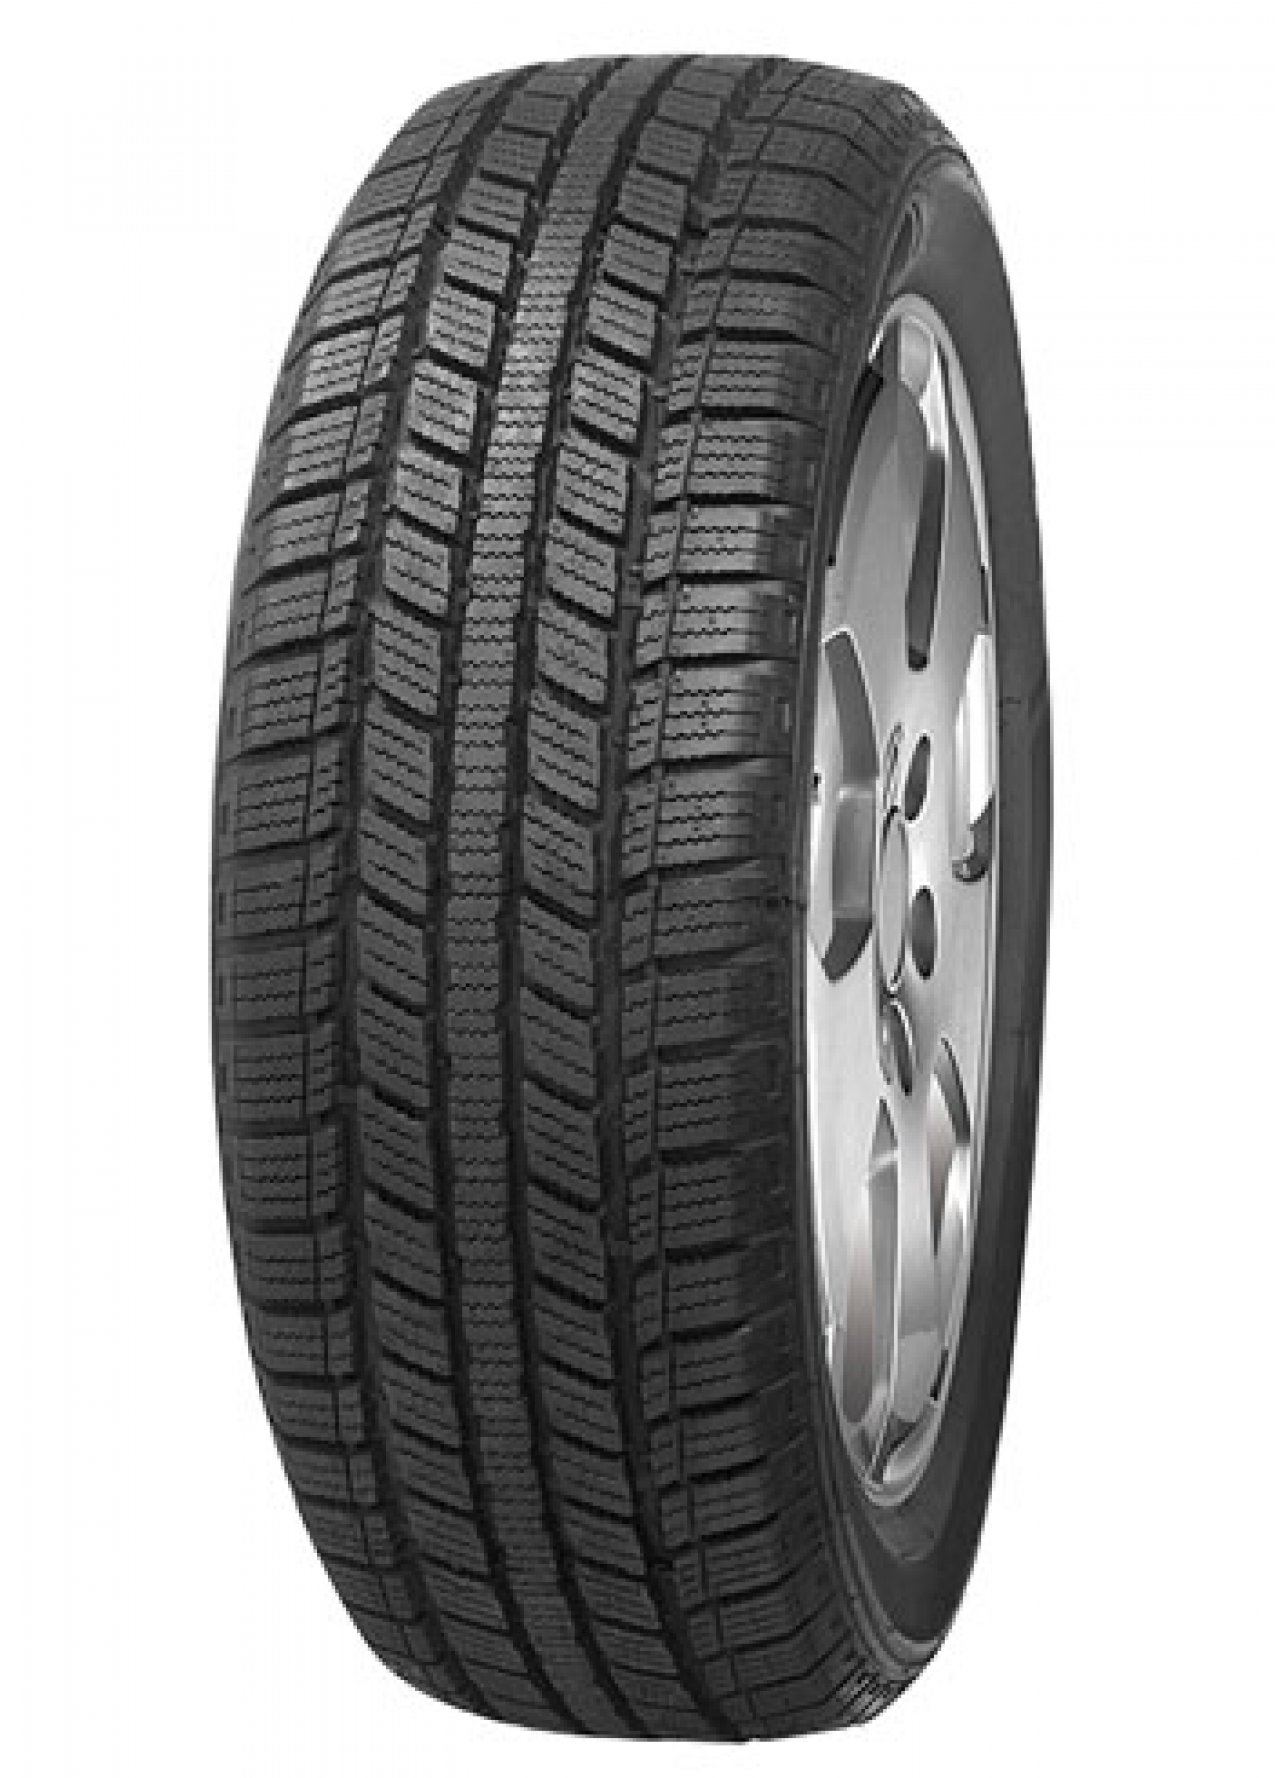 Gomme Nuove Imperial 185/75 R16C 104R 8PR SNOWDR 2 M+S pneumatici nuovi Invernale